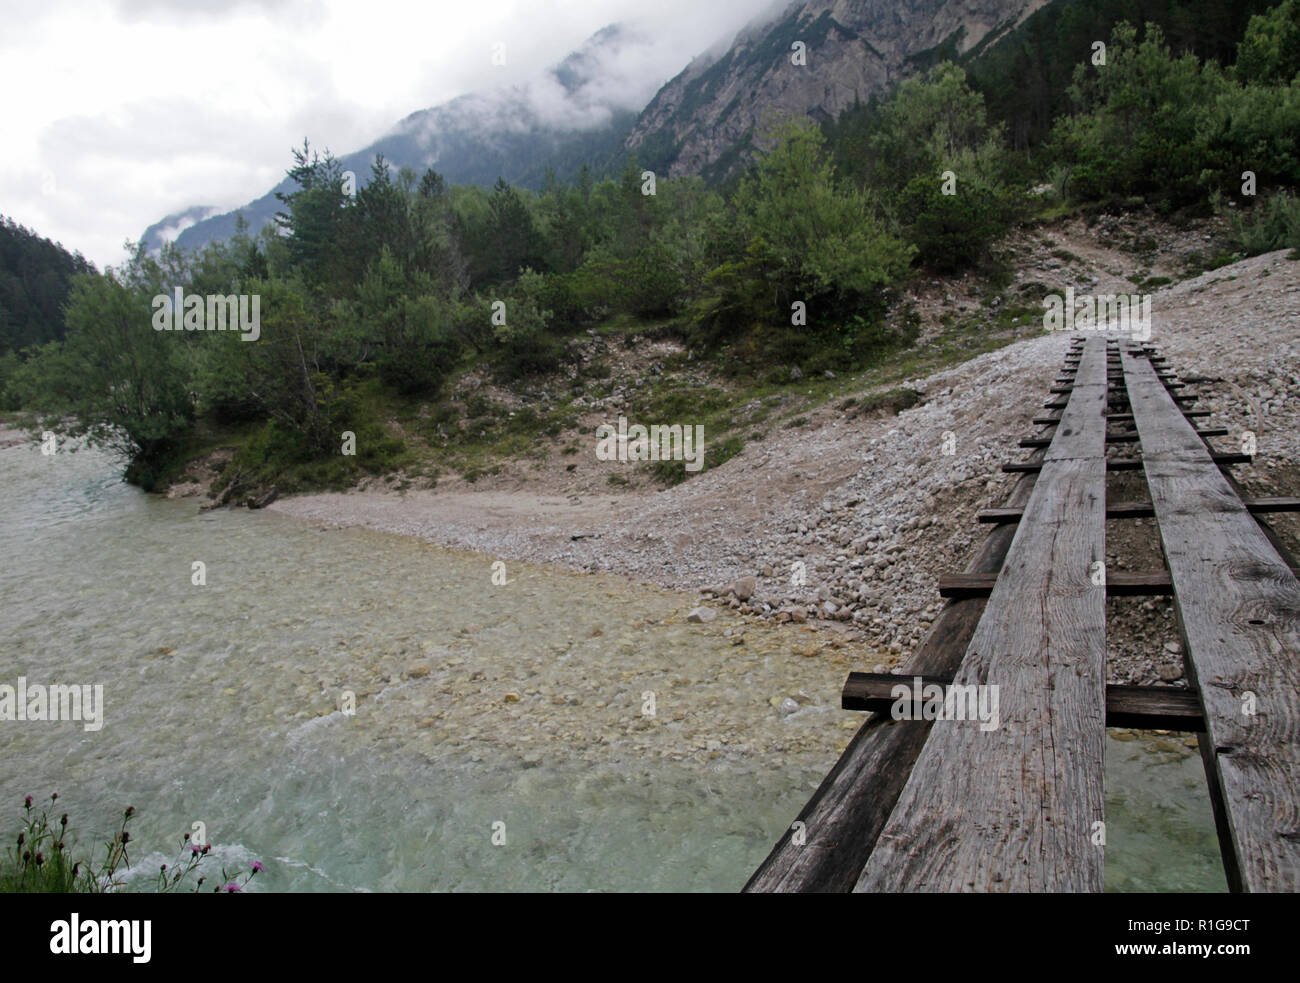 Wooden bridge across a mountain river in the Alps - Stock Image